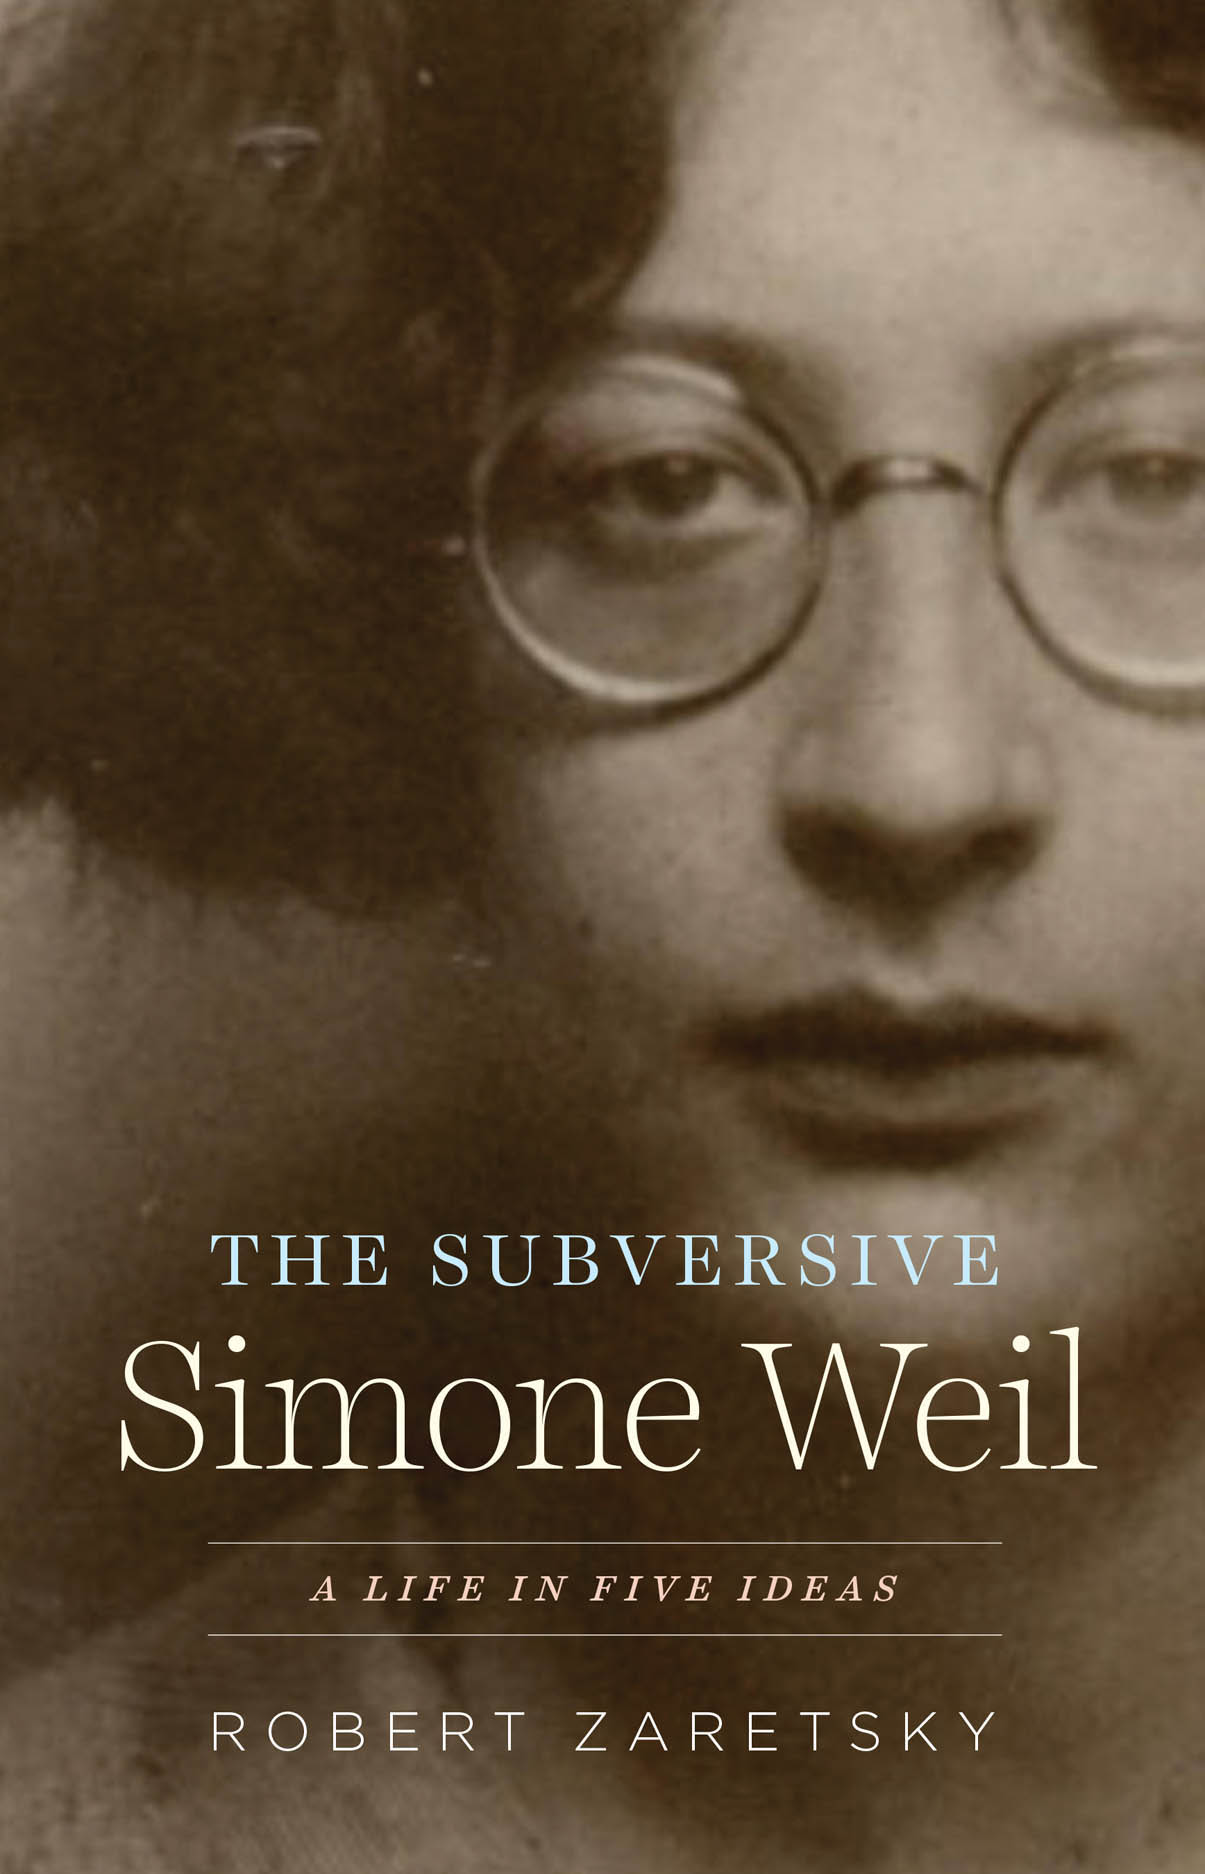 The Subversive Simone Weil: A Life in Five Ideas